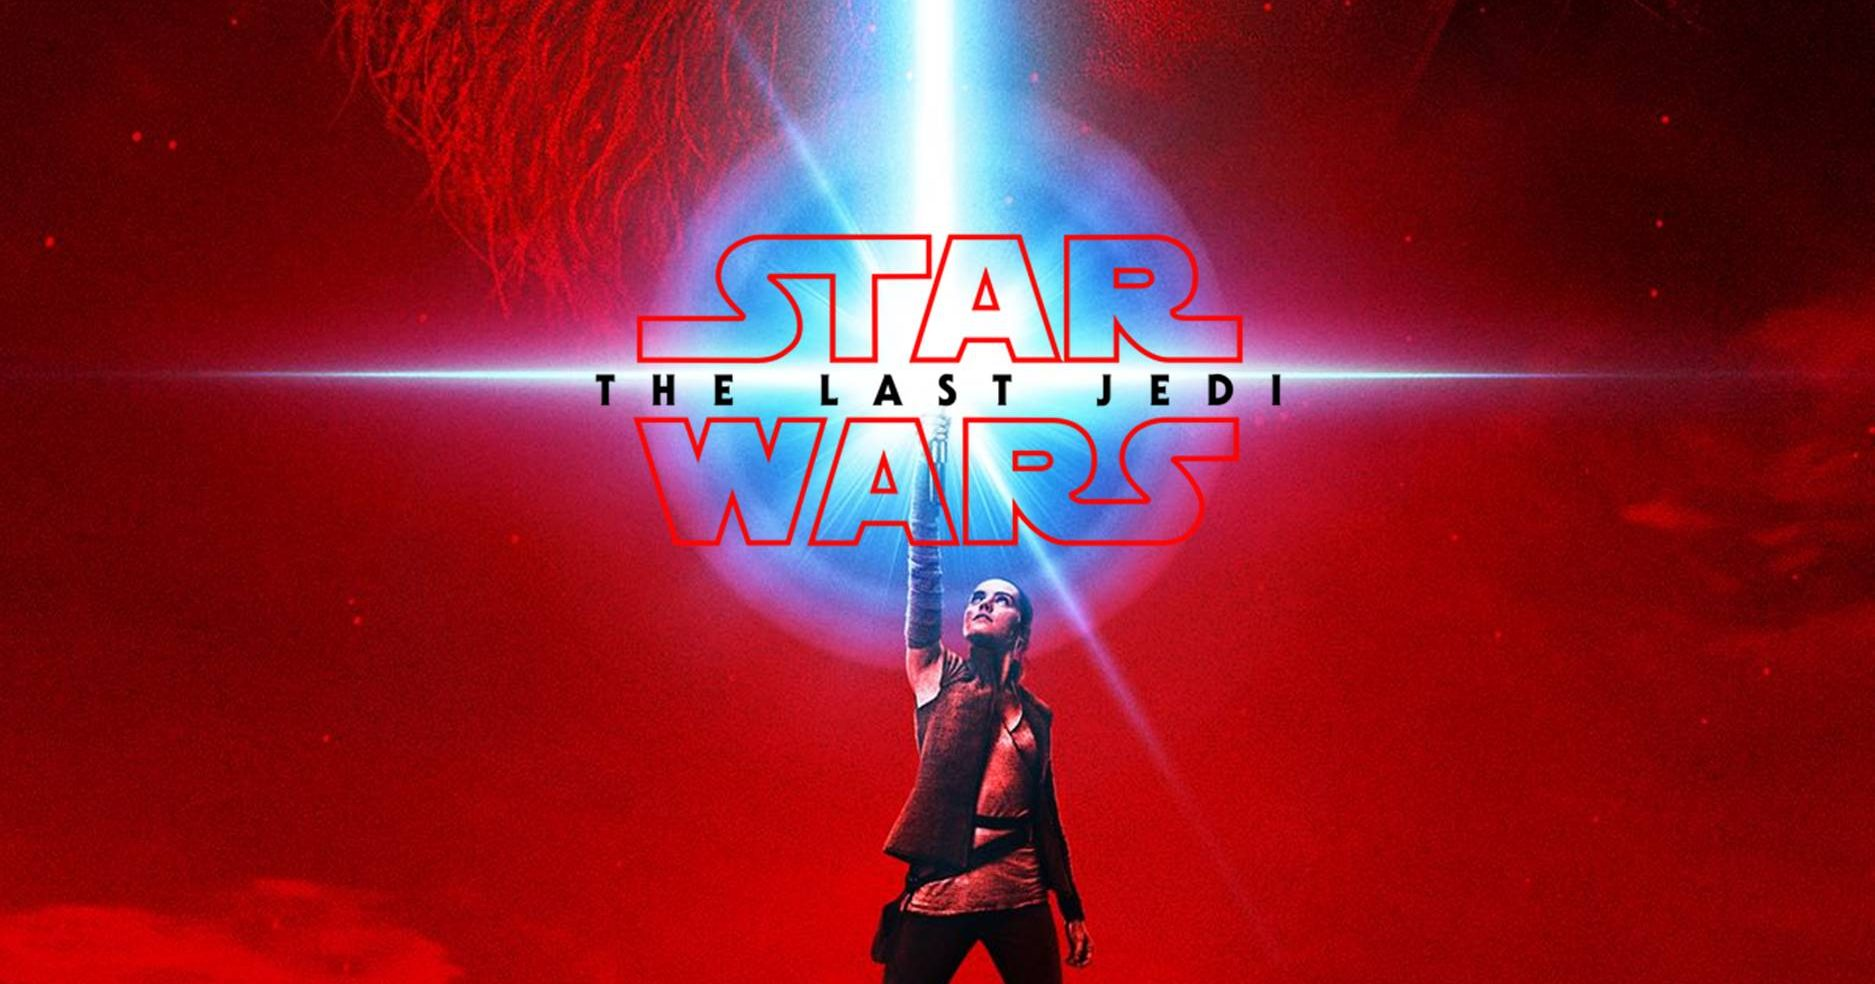 star-wars-the-last-jedi-episode-viii-8-banner-e1492210714771.jpg